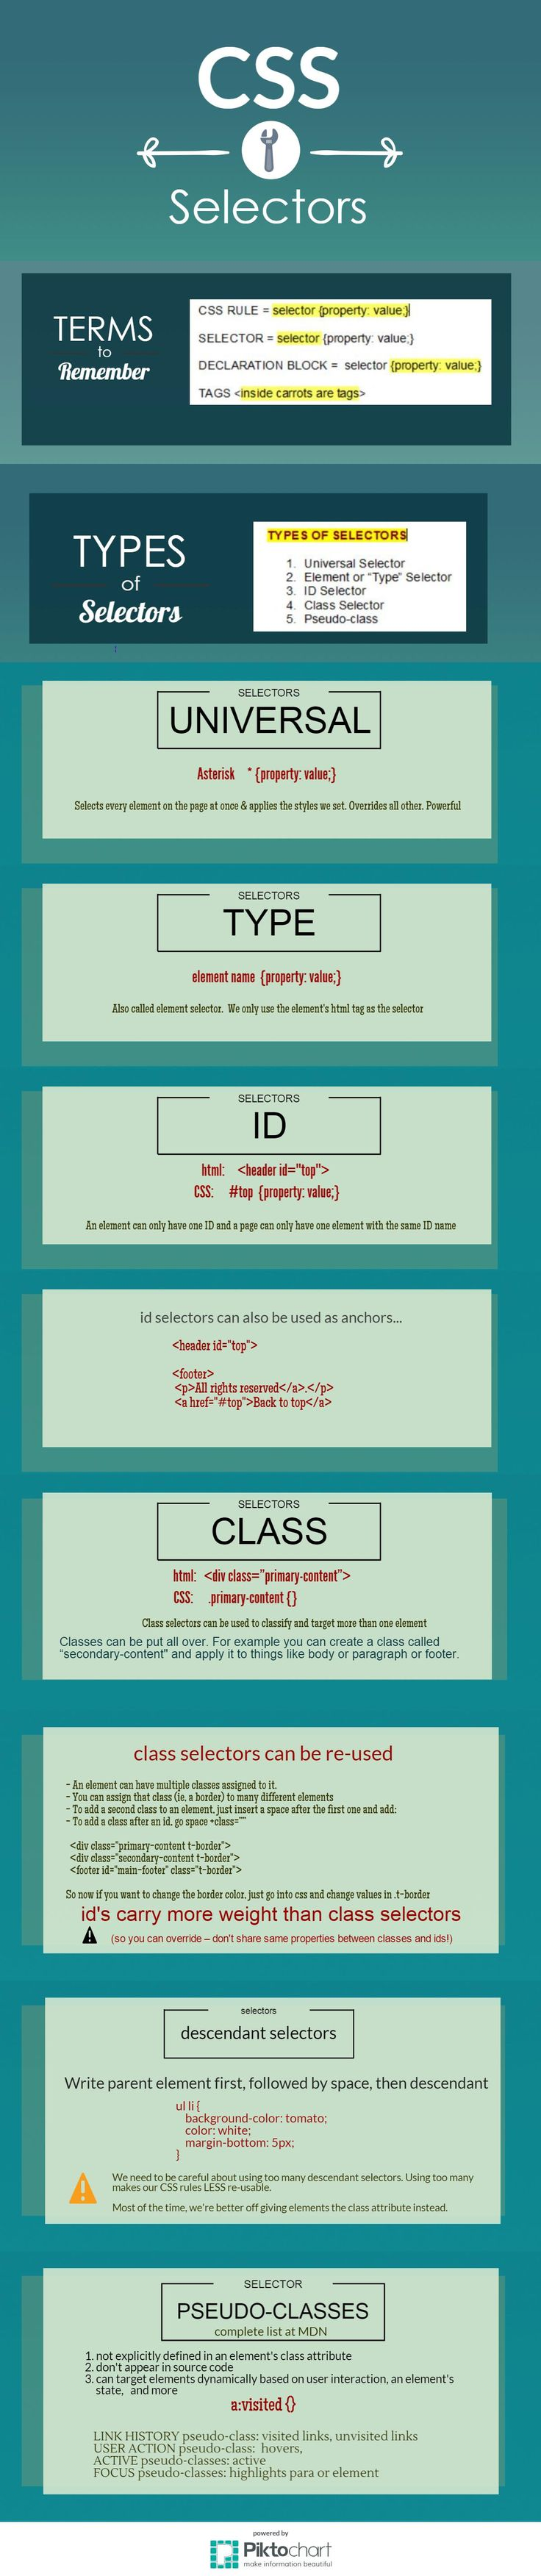 123 Best Kdols Images On Pinterest Coding Programming And What Is Electric Circuit Ency123 Learn Create Have Fun Css Selectors Basics From Class Notes Ideas Desarrollo Personal Para Masymejor